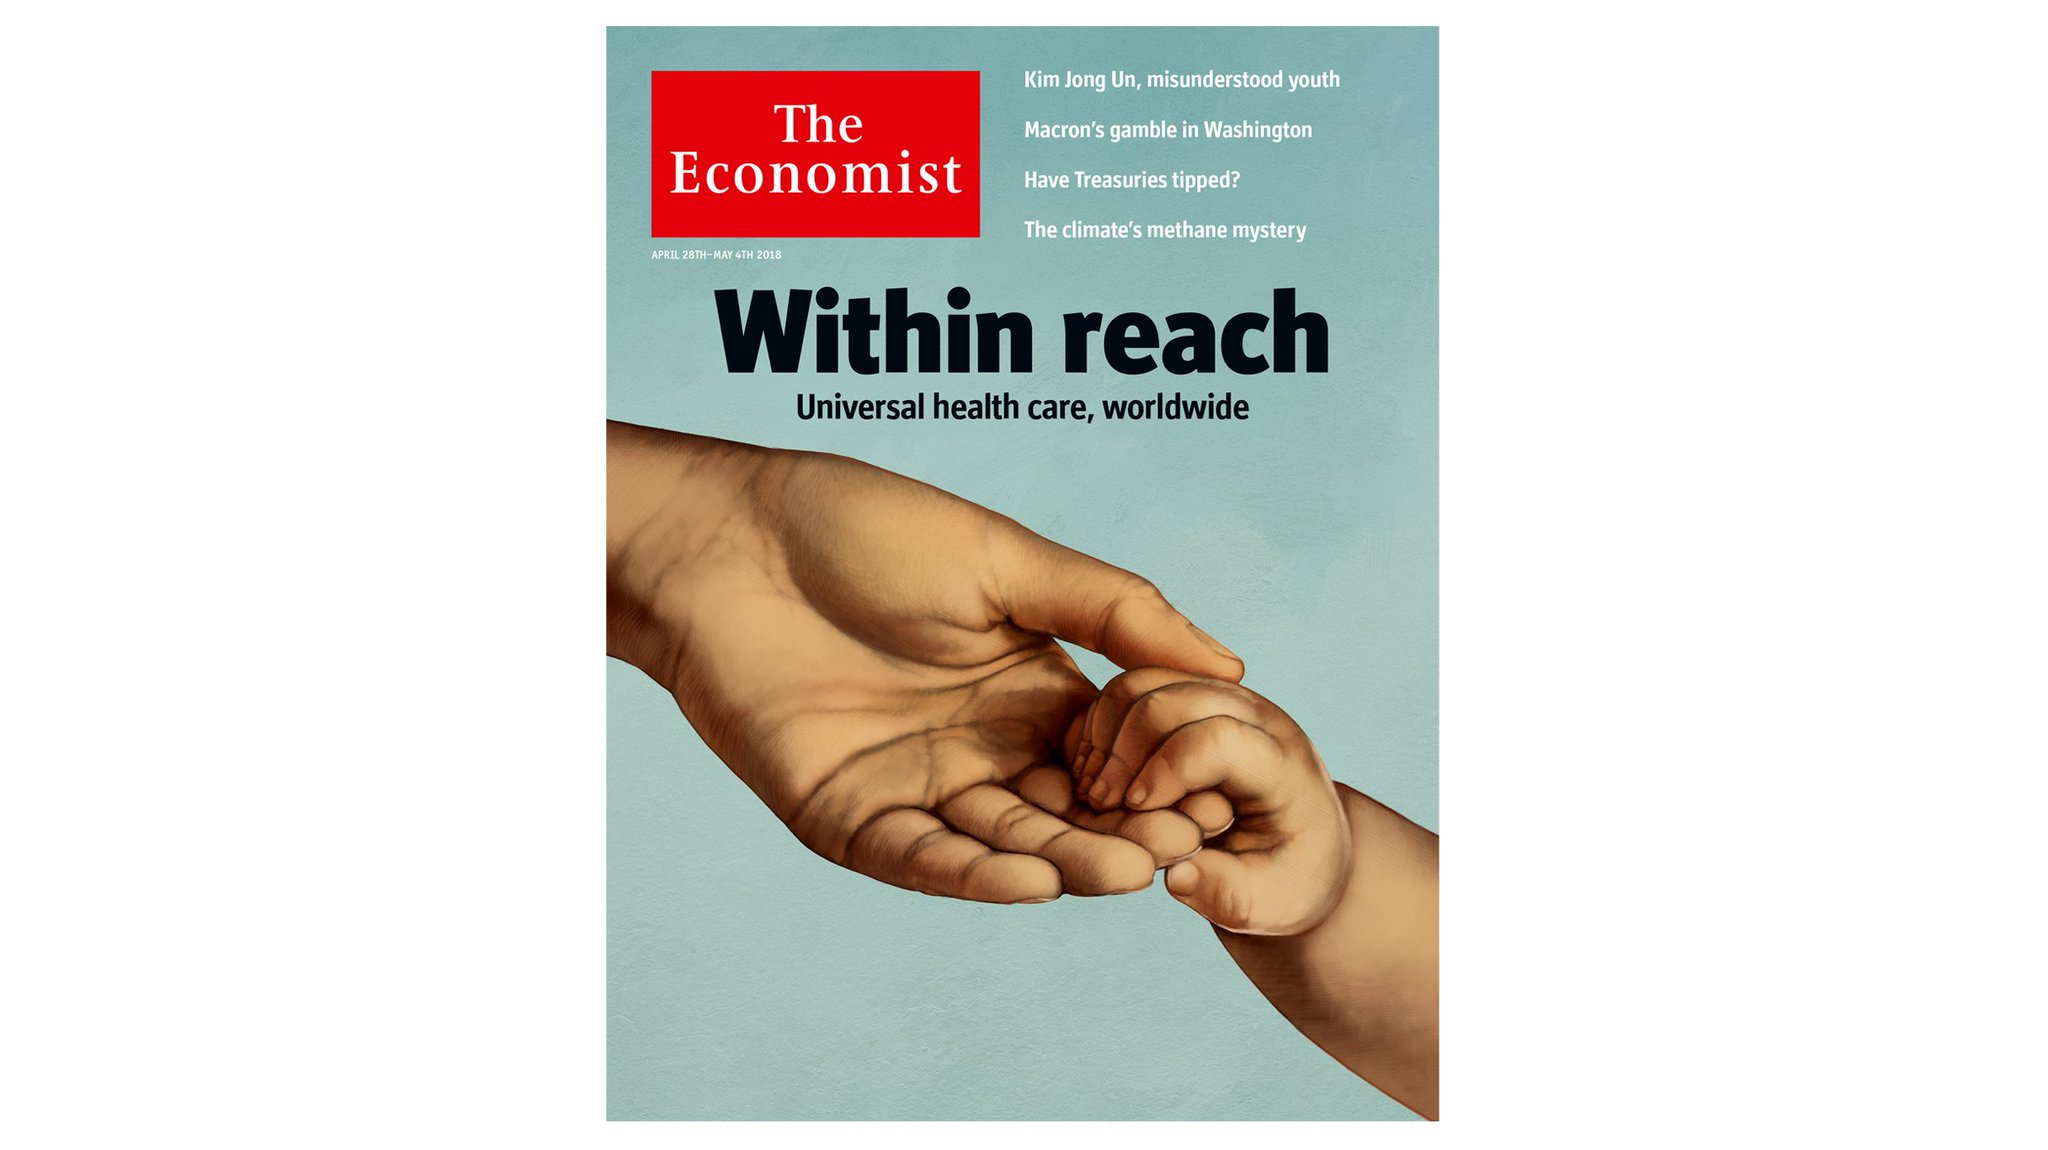 The case for universal health care is a powerful one—including in poor countries. Our cover this week https://t.co/dxPT4kFAuq